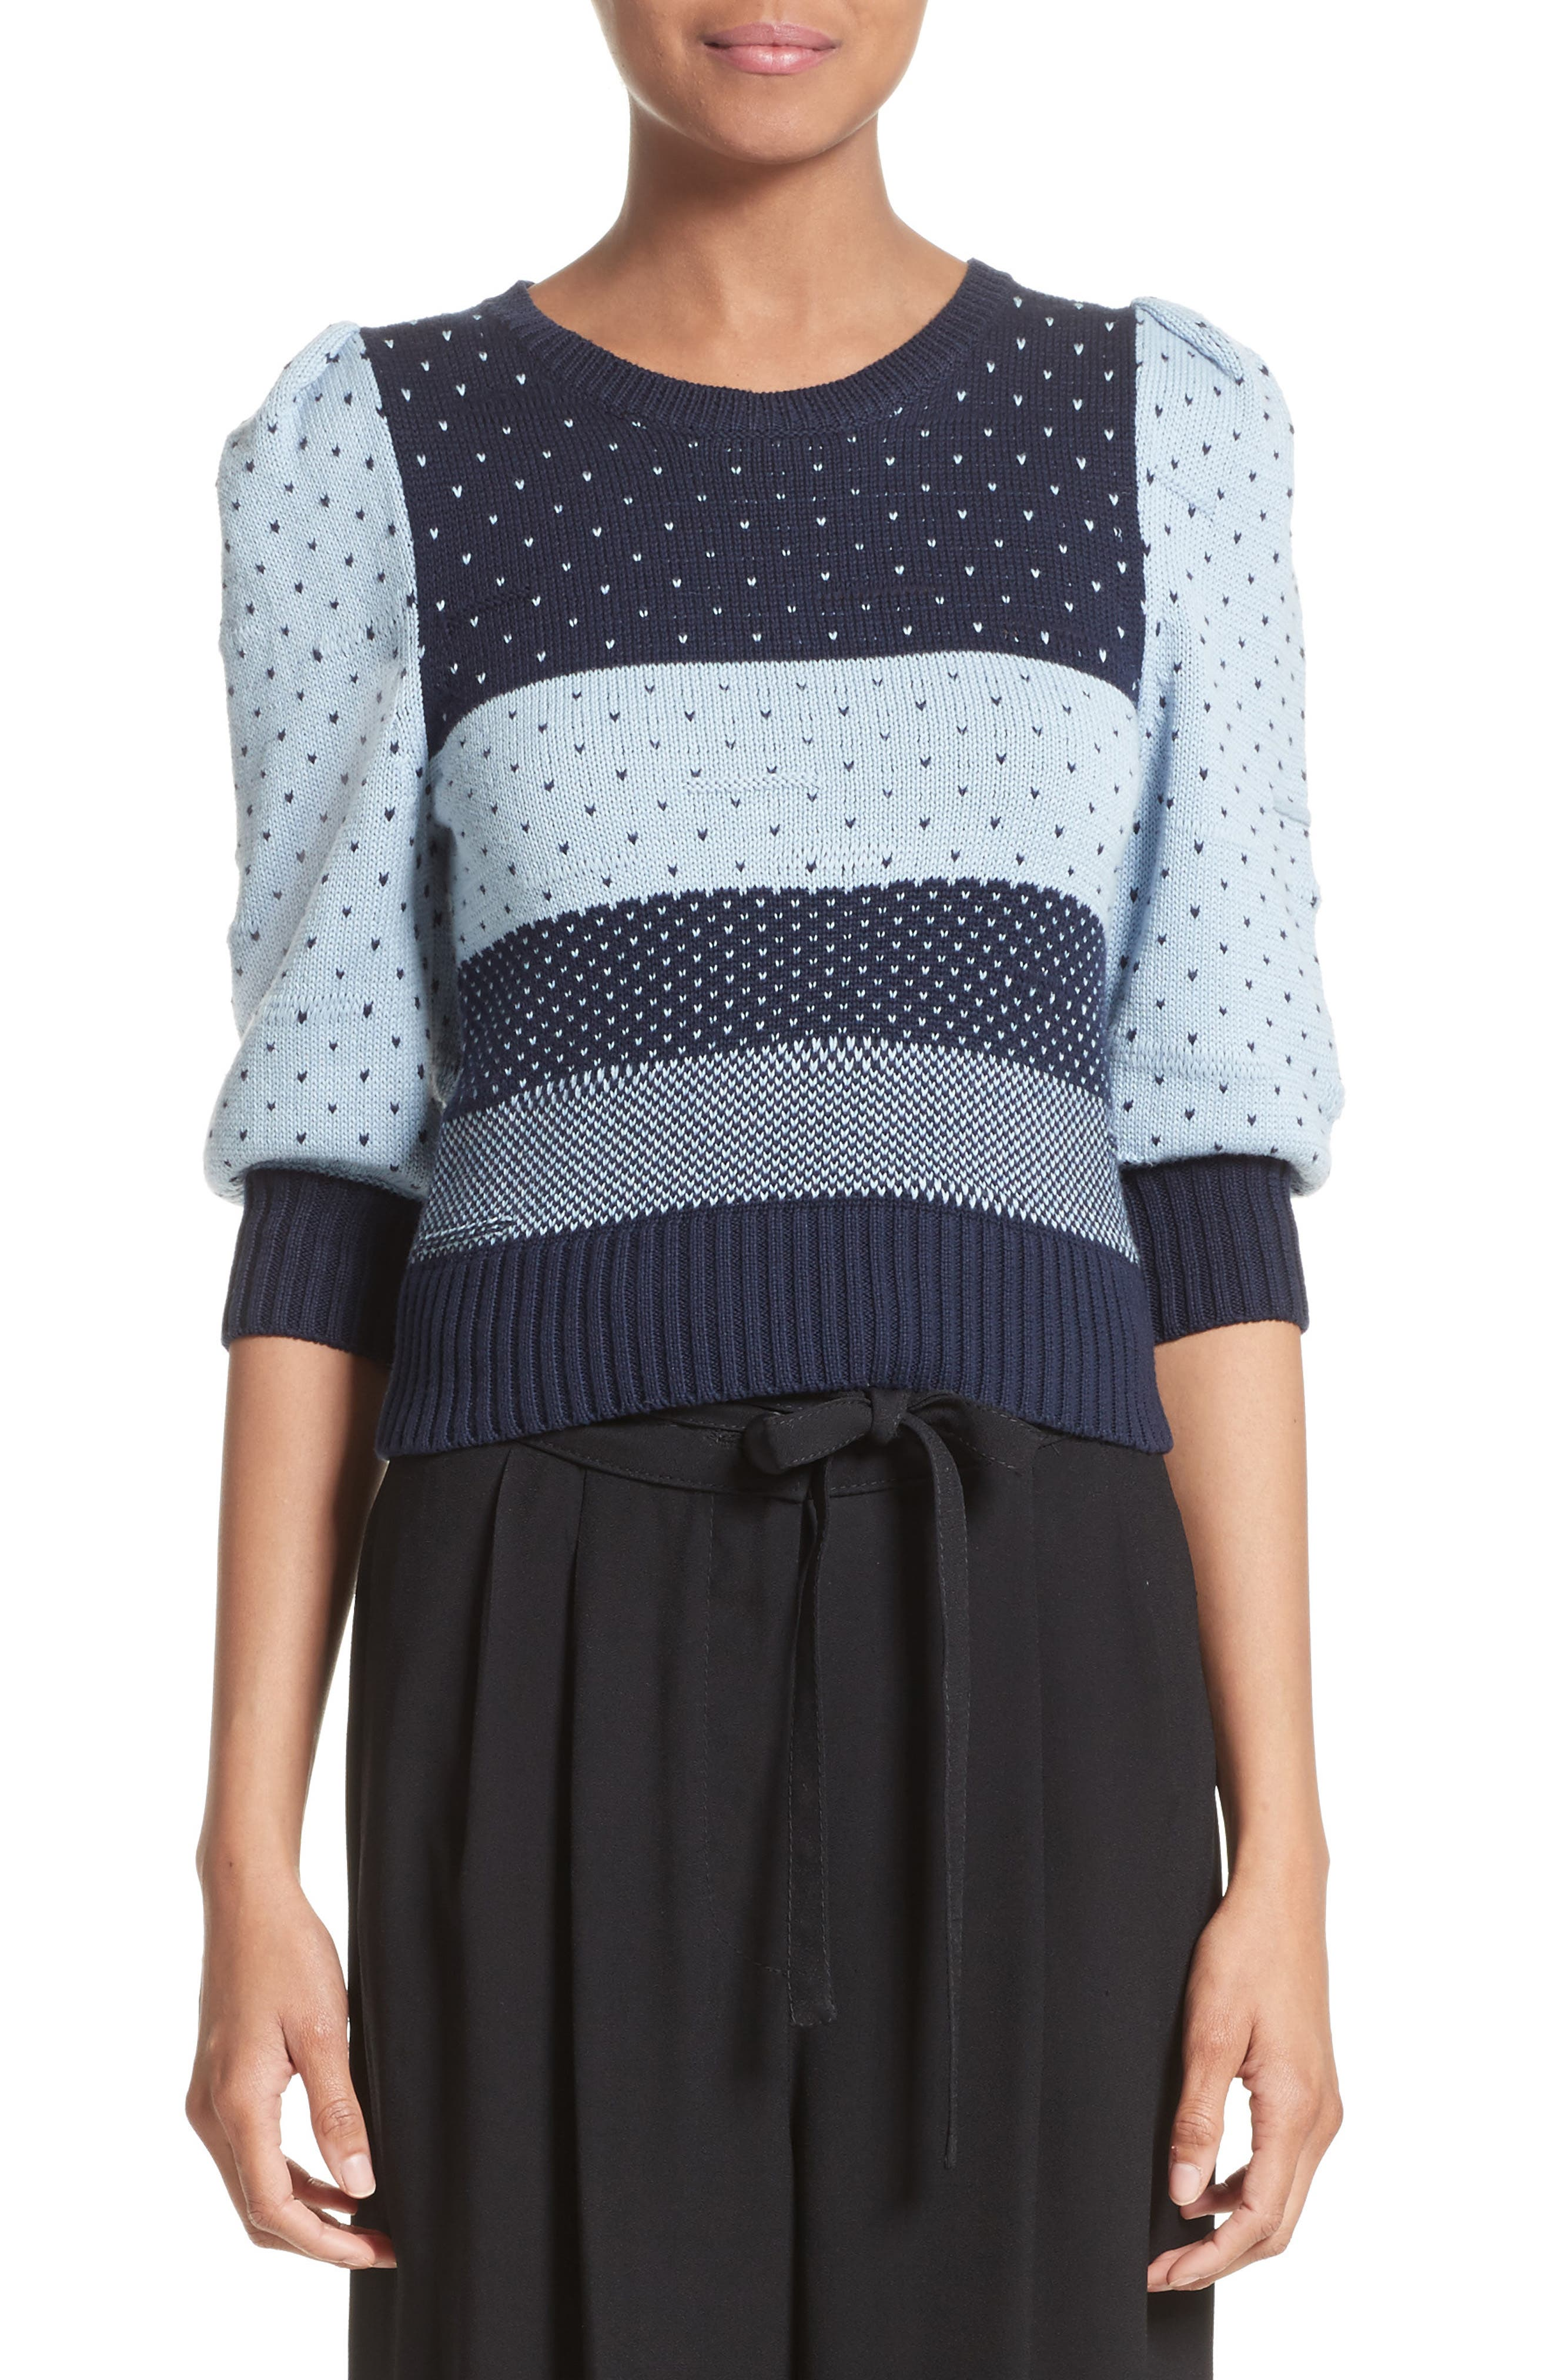 Alternate Image 1 Selected - MARC JACOBS Cotton Jacquard Sweater